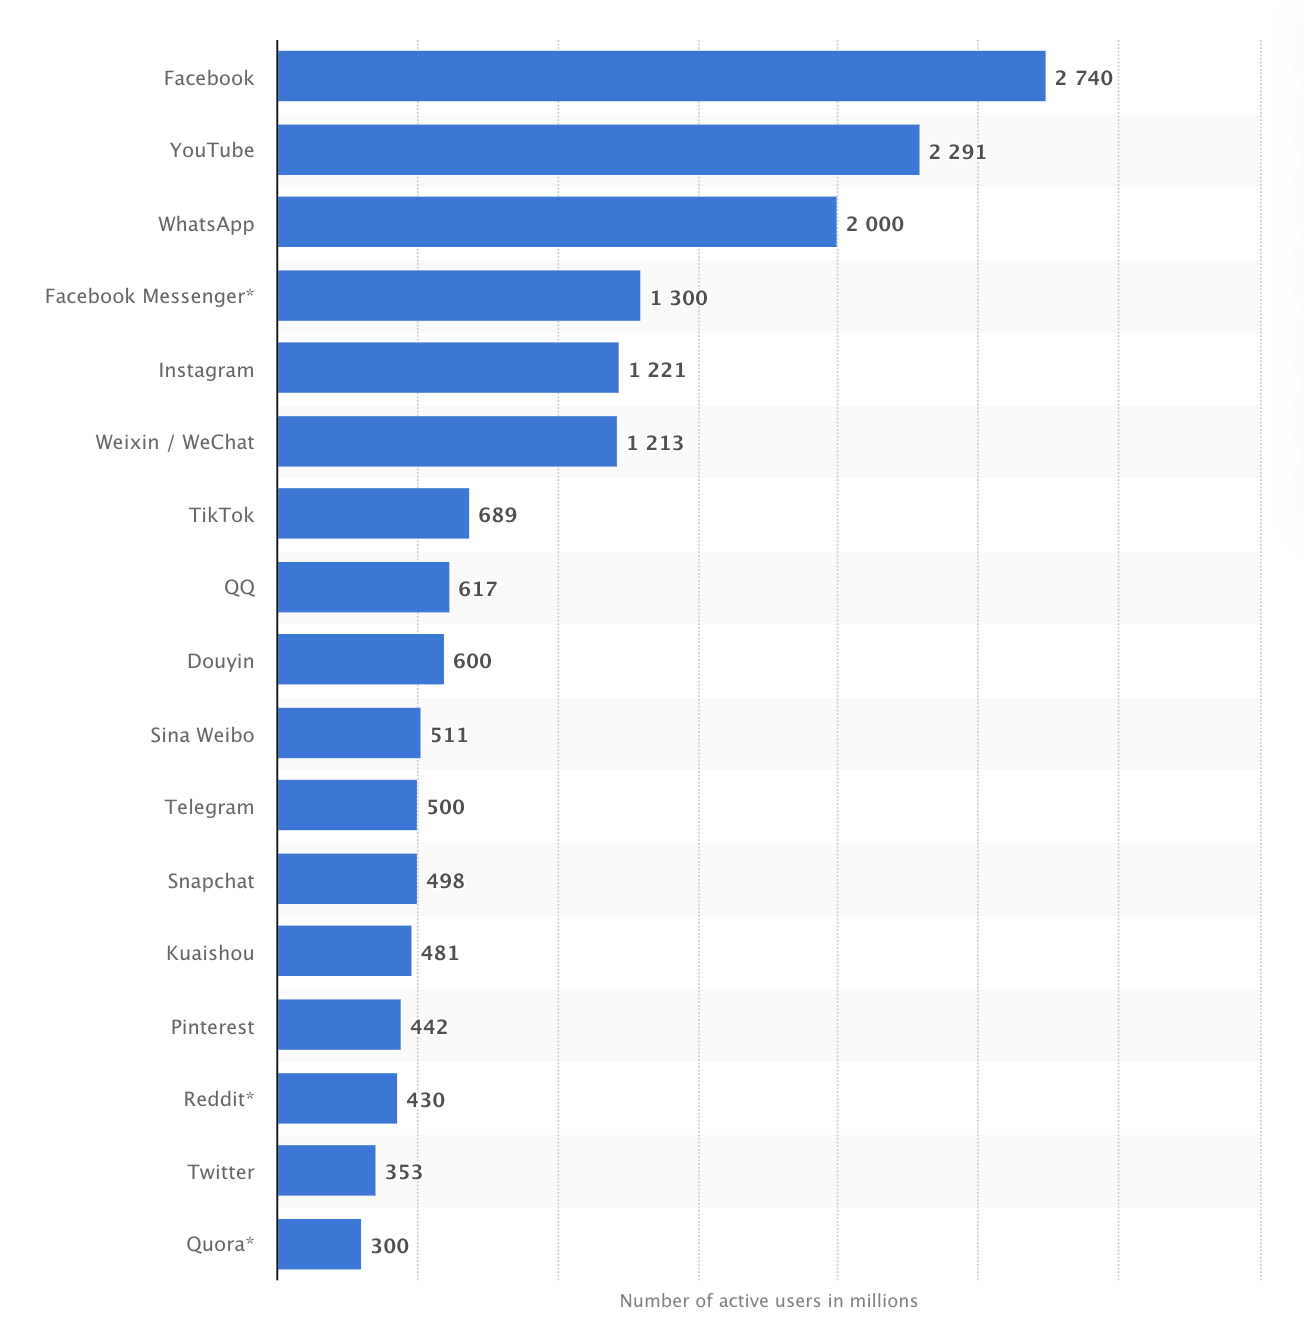 Most popular social networks worldwide as of January 2021, ranked by number of active users.